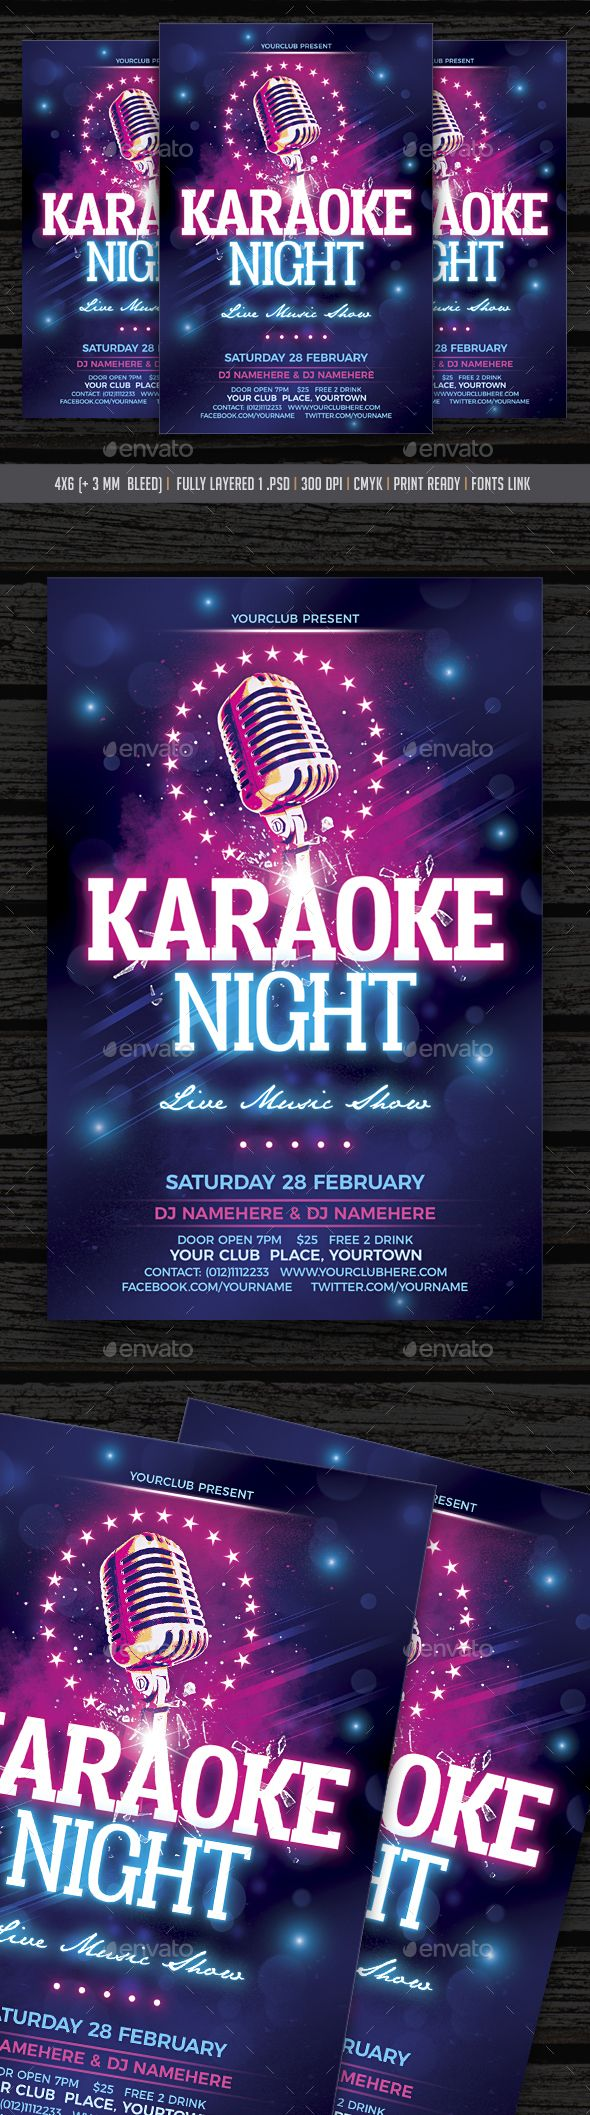 9 best karaoke poster images on Pinterest | Karaoke party, Beer ...